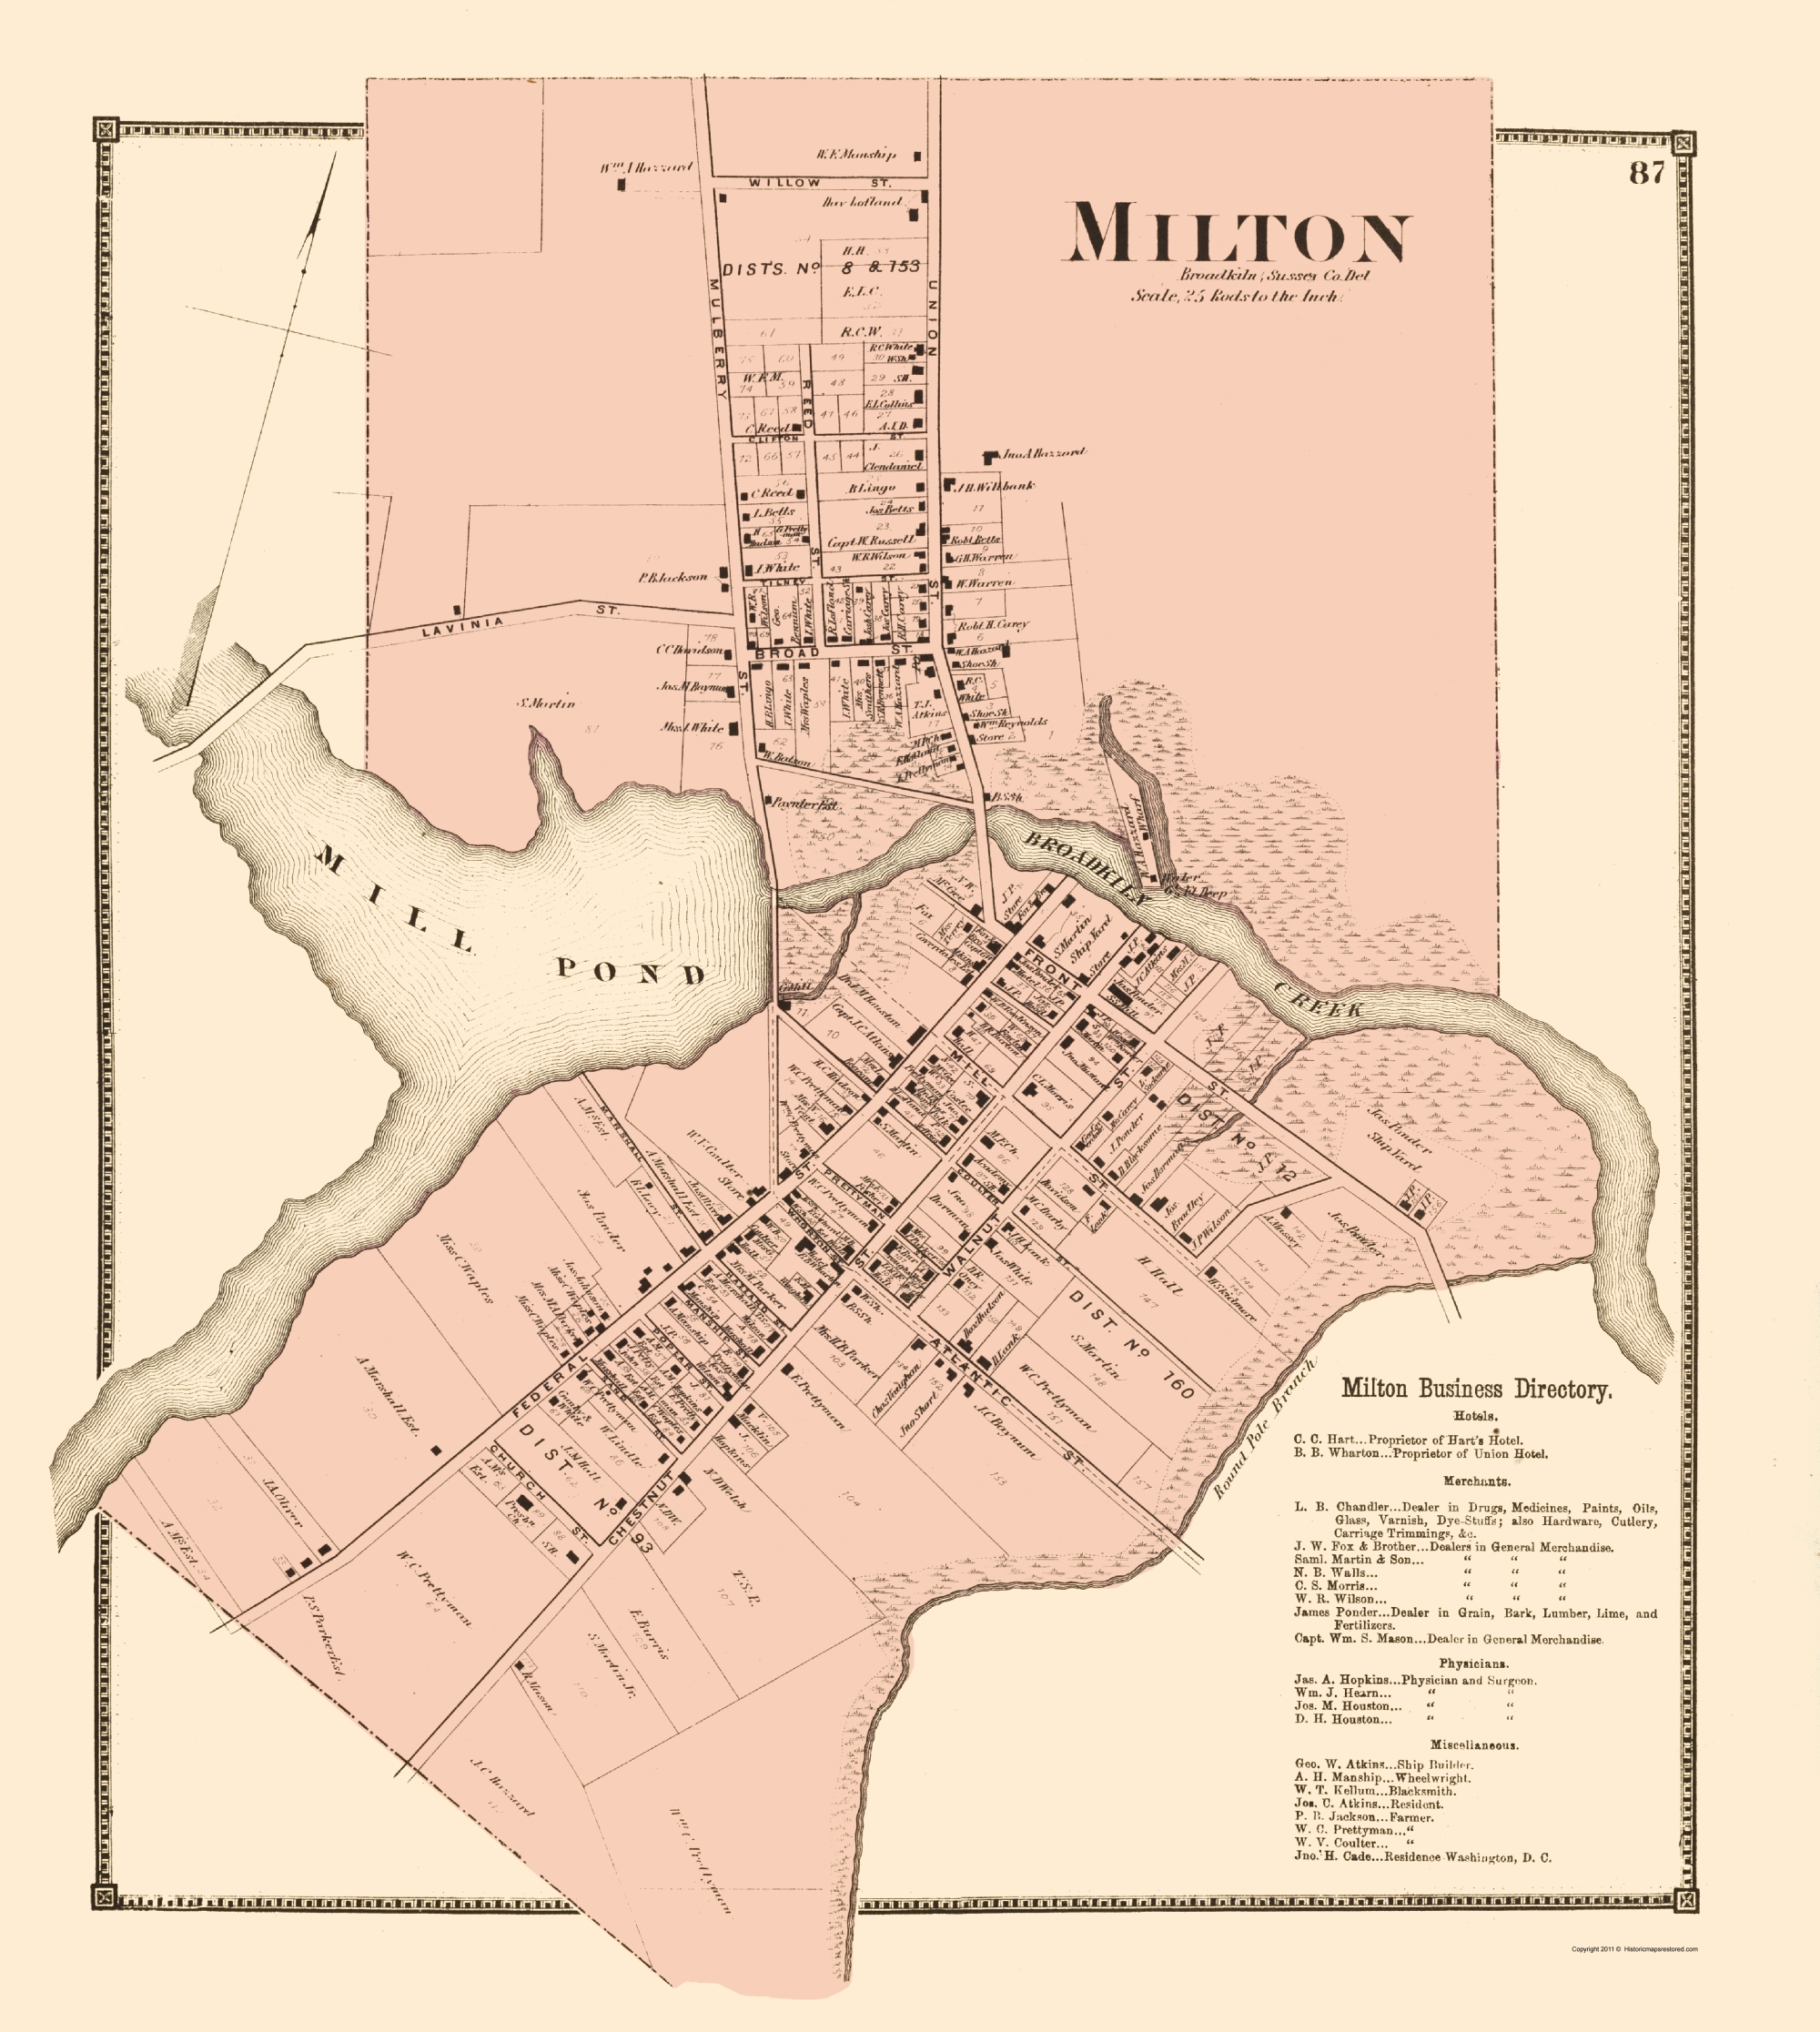 Old City Map Milton Delaware Landowner Beers 1868 23 x 2567